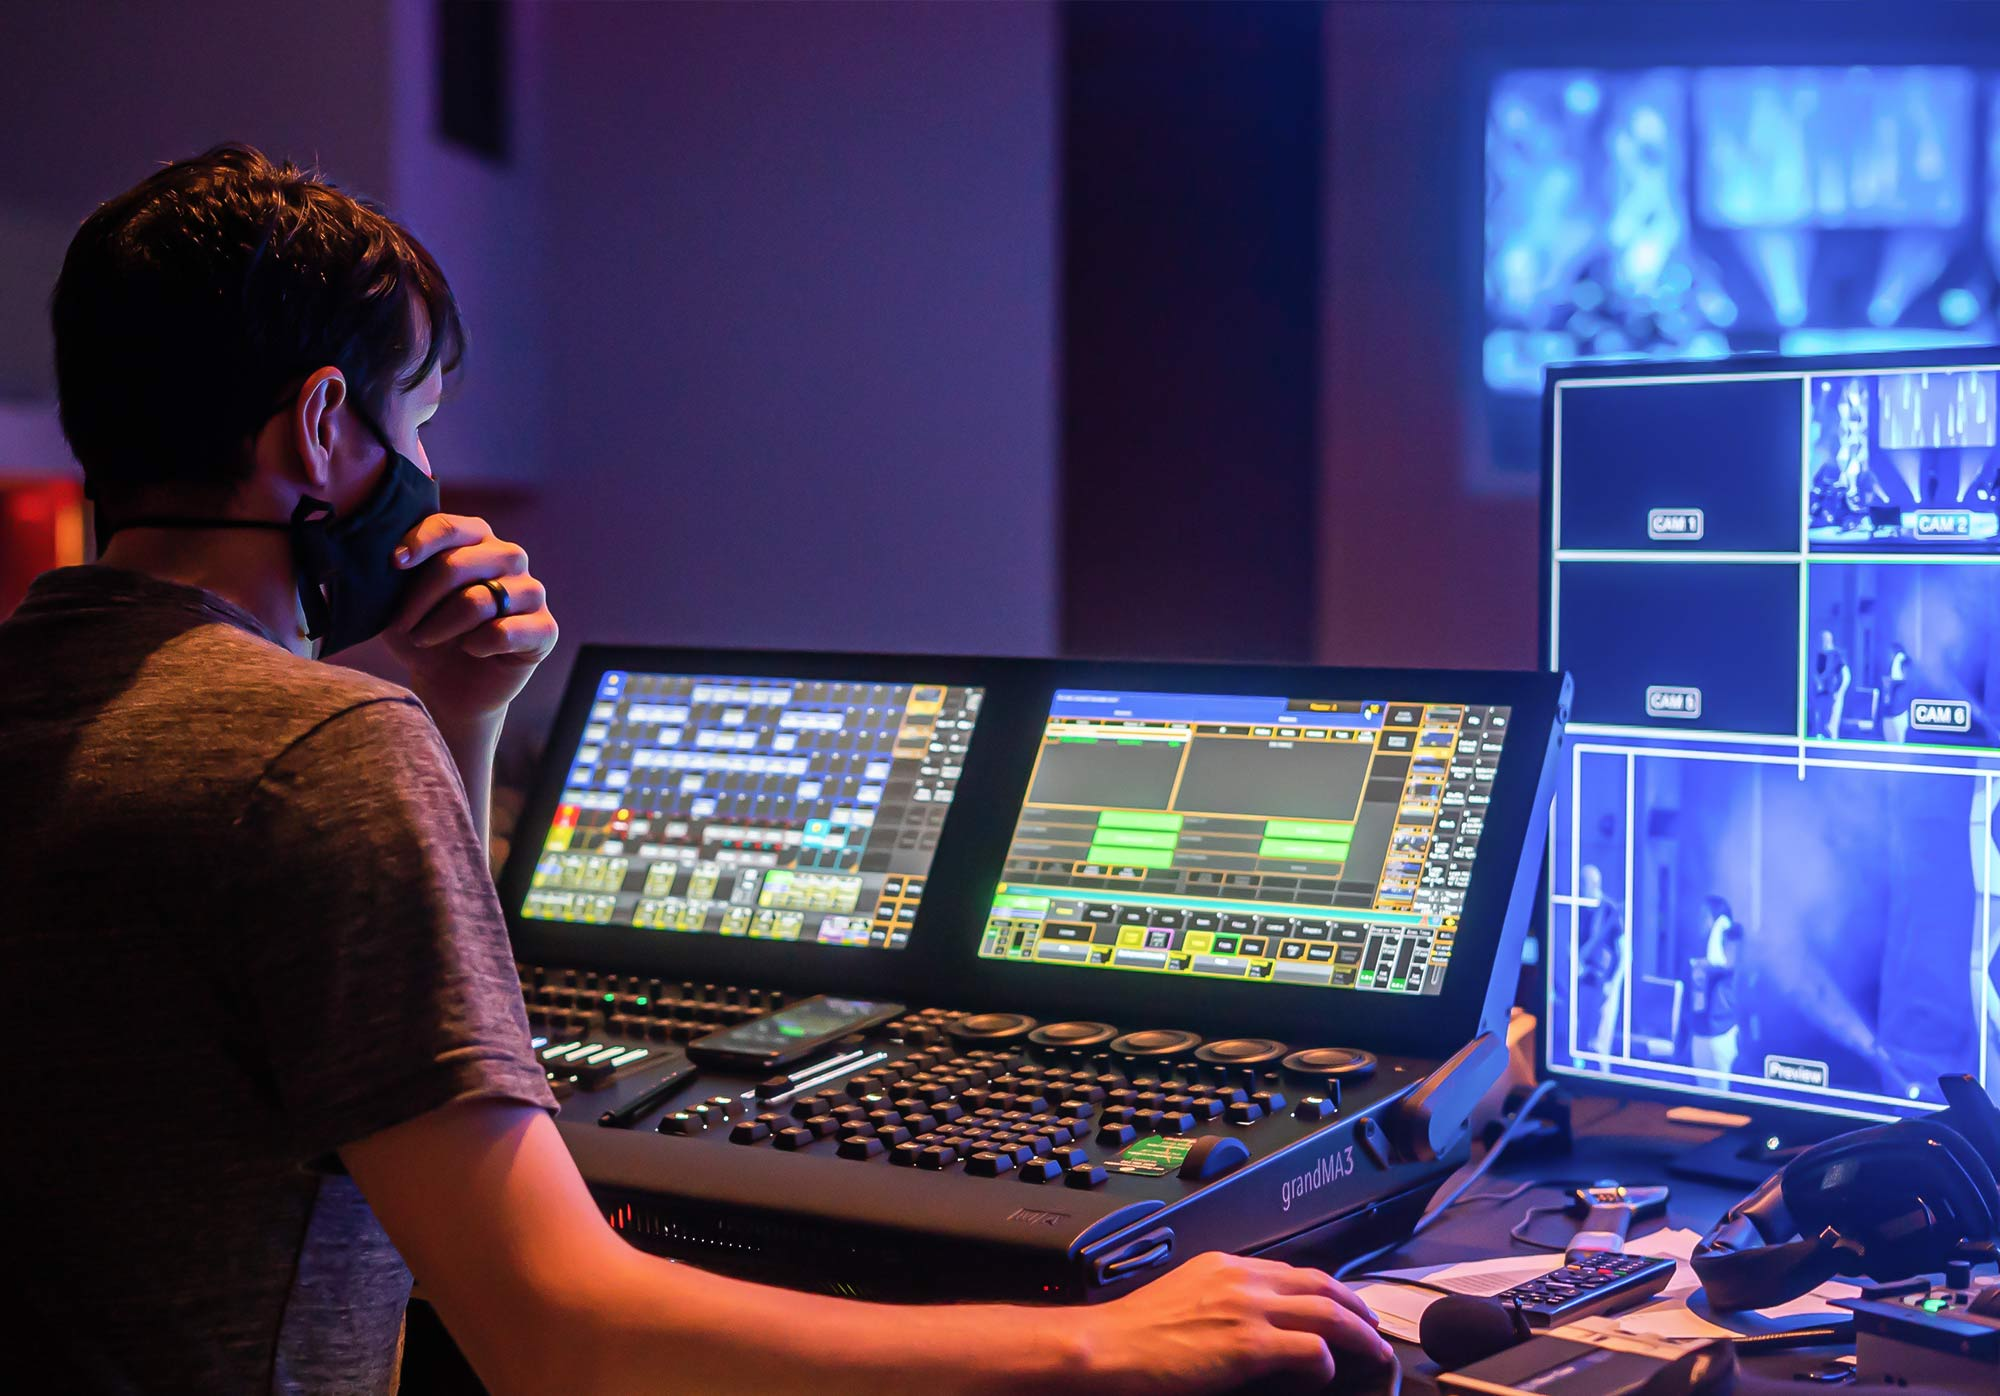 3 Ways Church Media Techs Can Work Better With Others